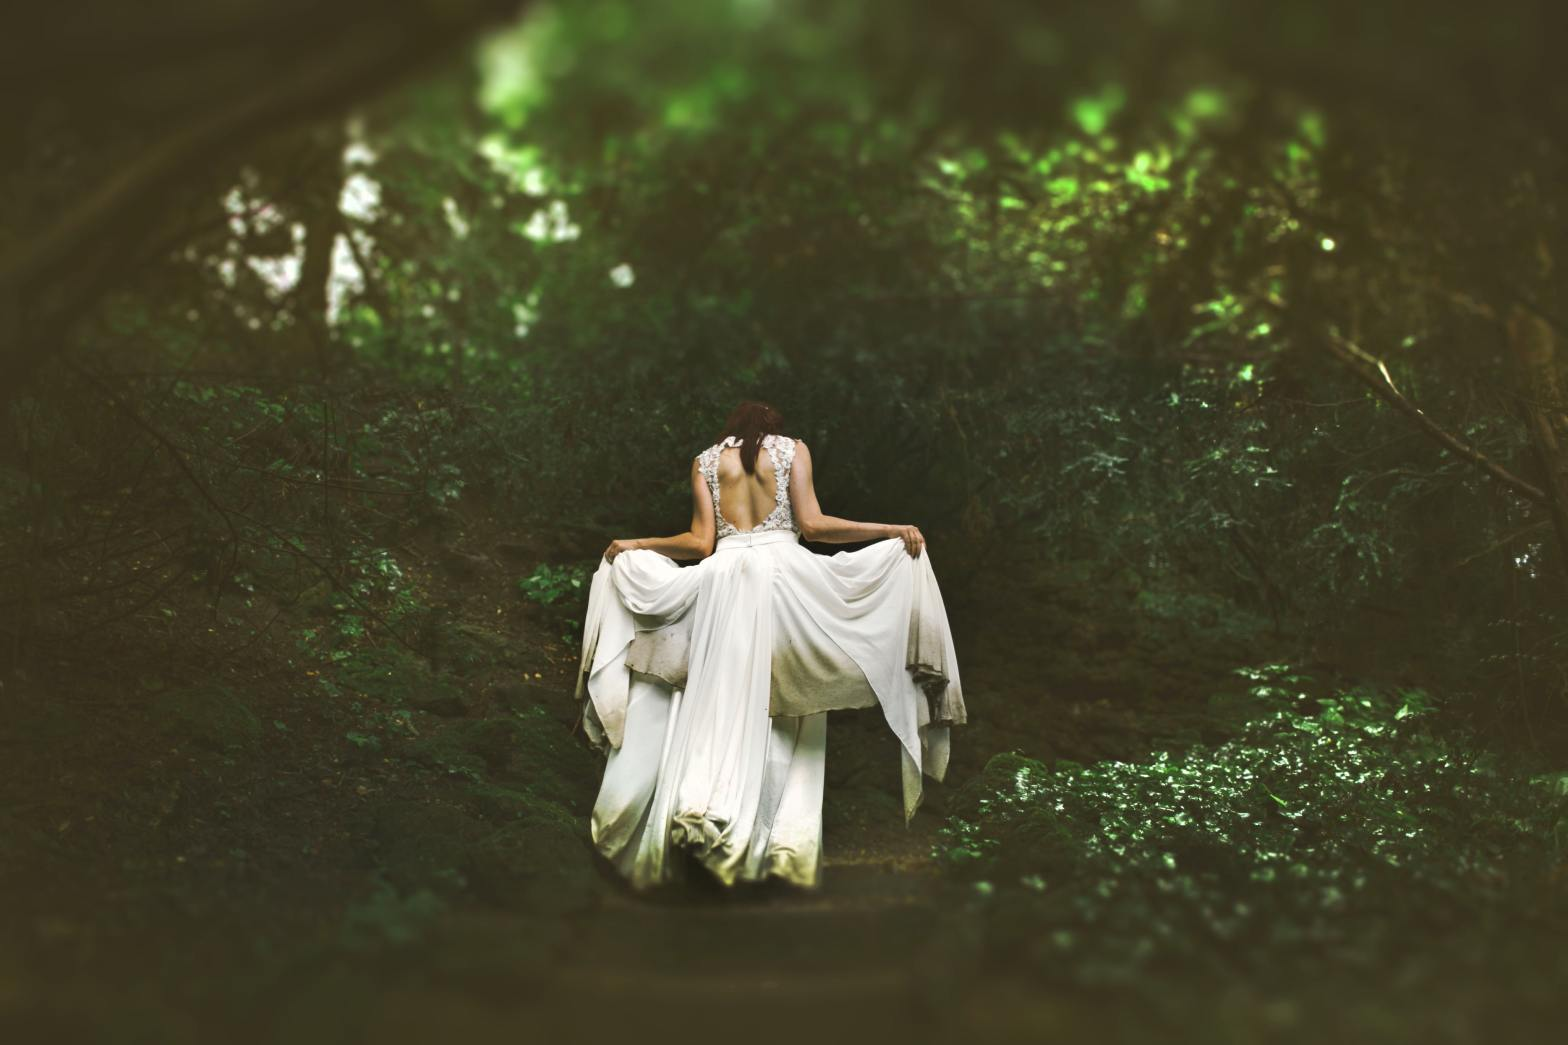 photo of woman in white dress in magical forest